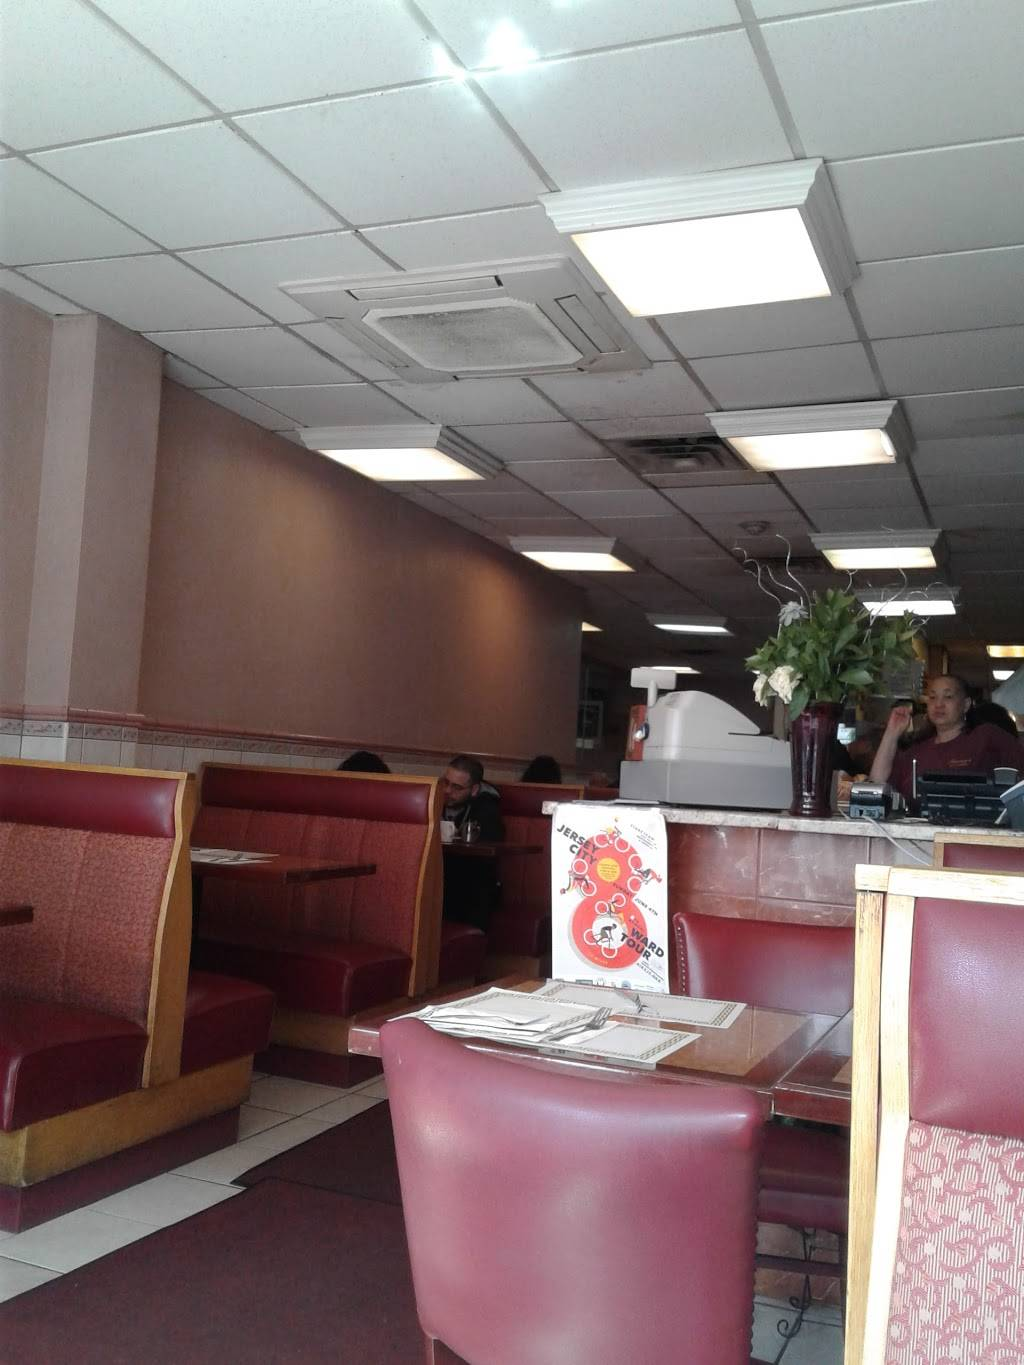 Tommys Family Restaurant   meal delivery   349 Central Ave, Jersey City, NJ 07307, USA   2012171211 OR +1 201-217-1211